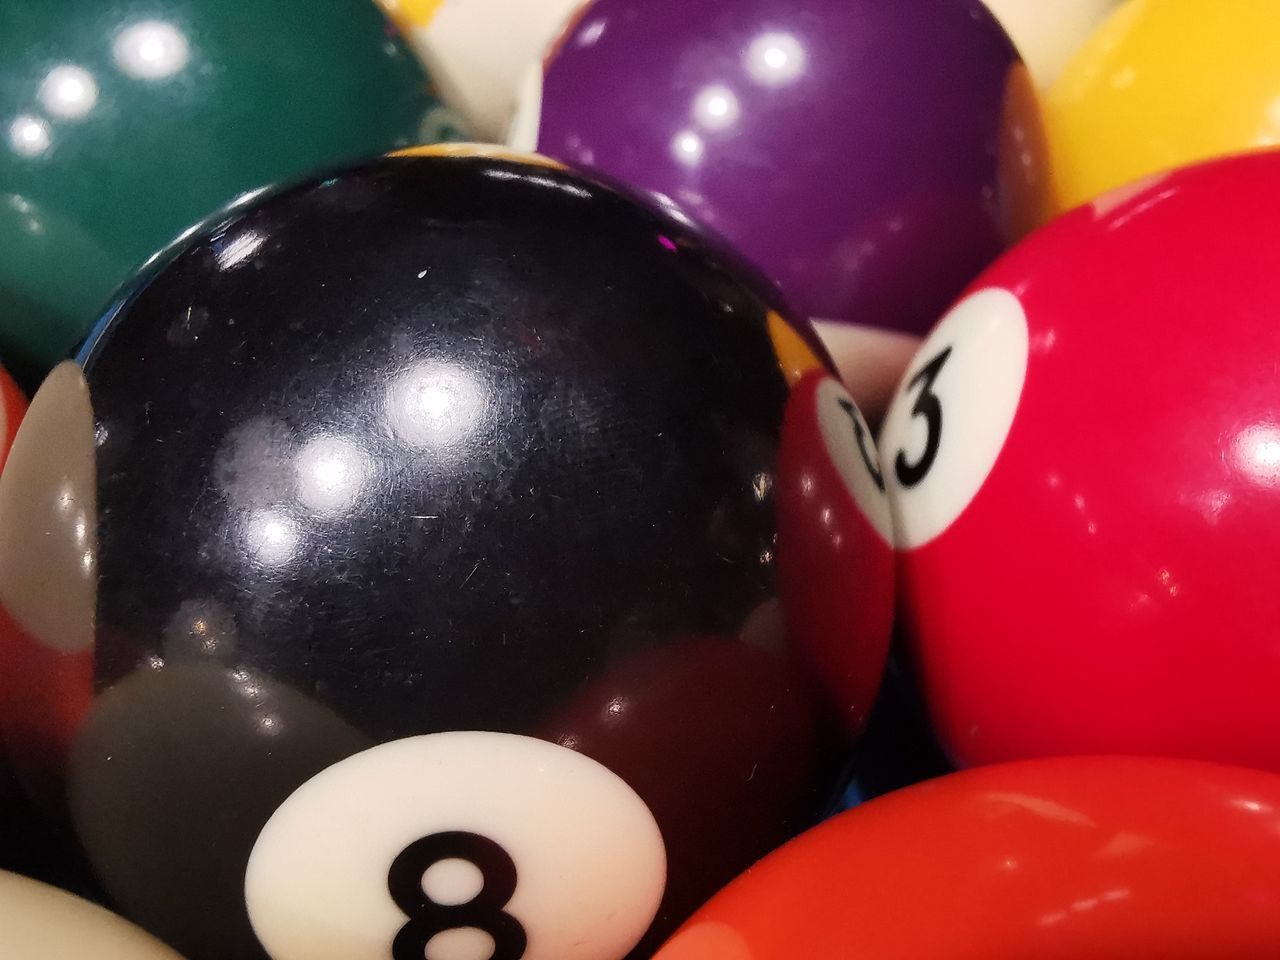 ball, close-up, pool ball, indoors, number, still life, table, sphere, multi colored, sport, pool table, no people, red, pool - cue sport, focus on foreground, balloon, shiny, relaxation, white color, arts culture and entertainment